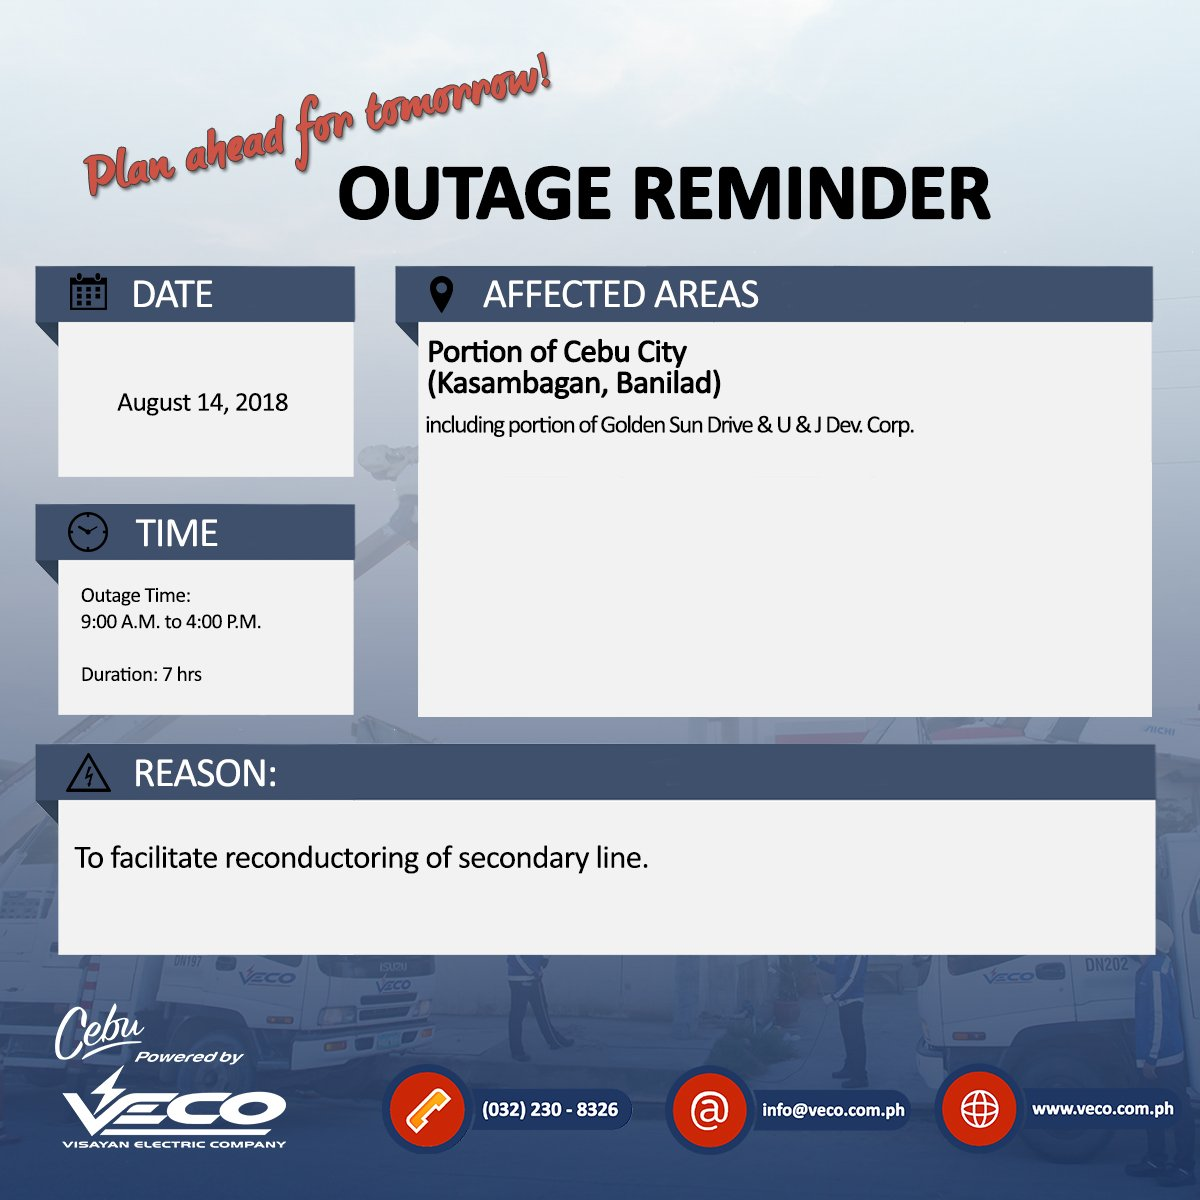 VECO - Please be reminded of the scheduled power outage